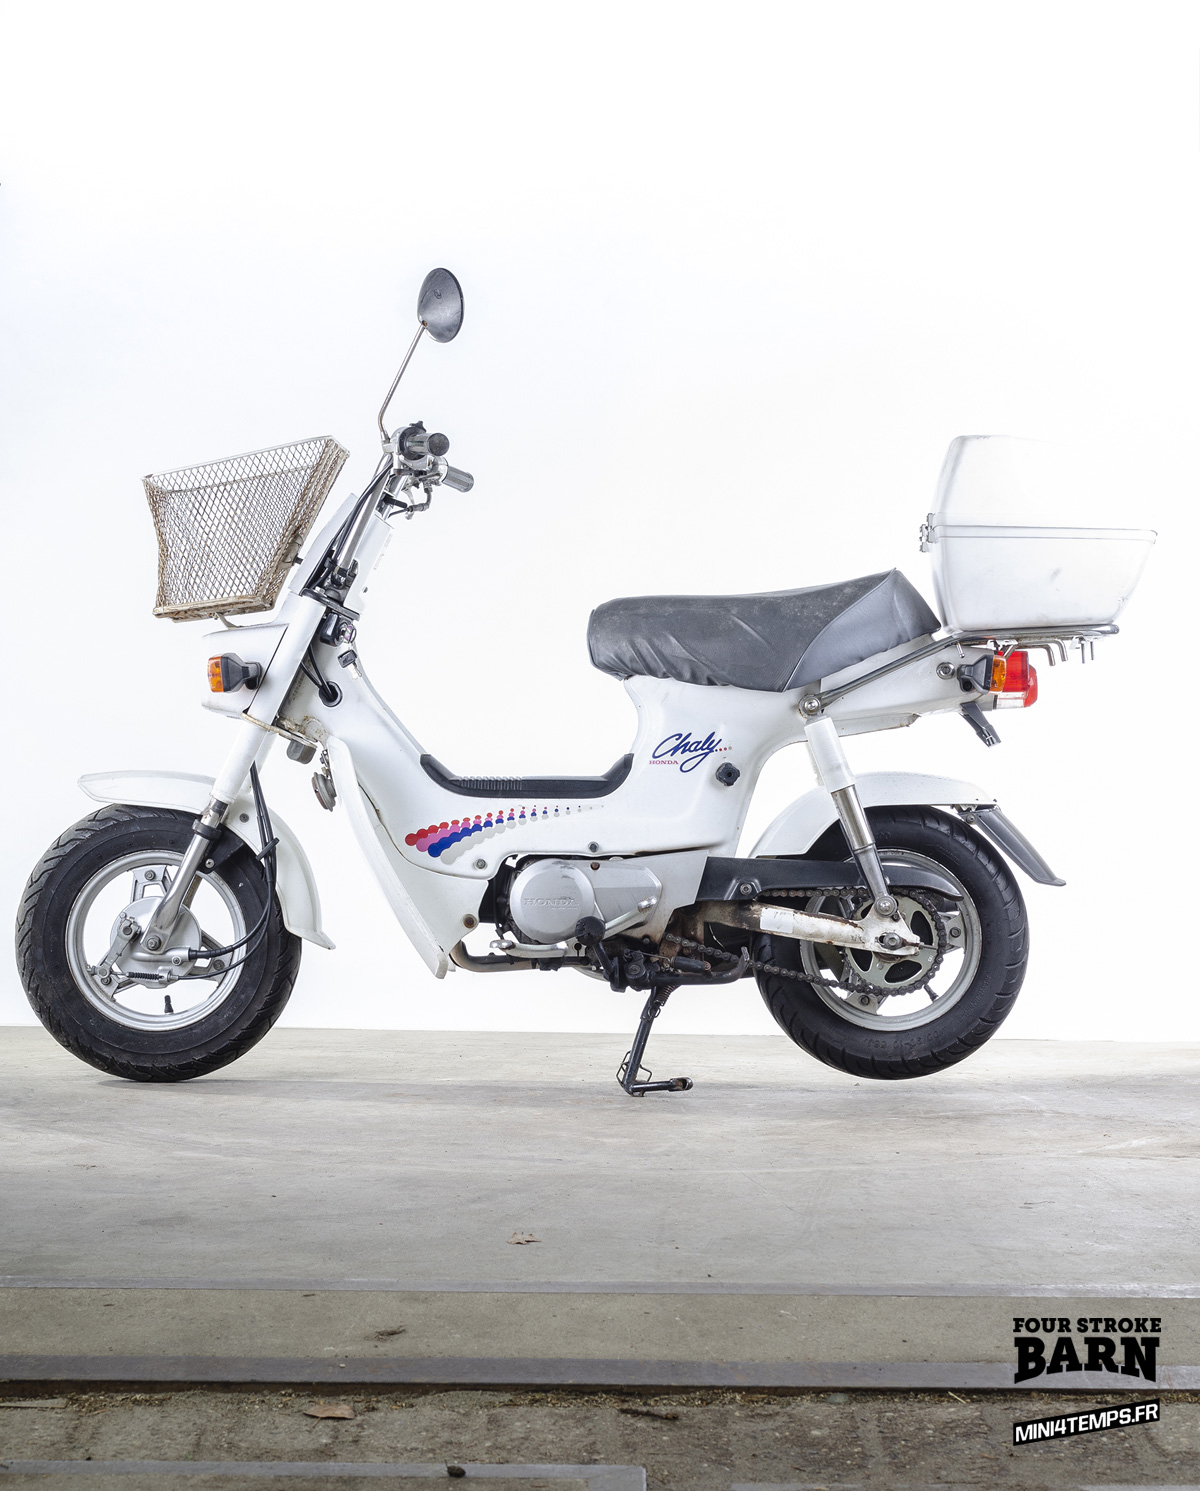 Le Honda Chaly white de Four Stroke Barn - mini4temps.fr